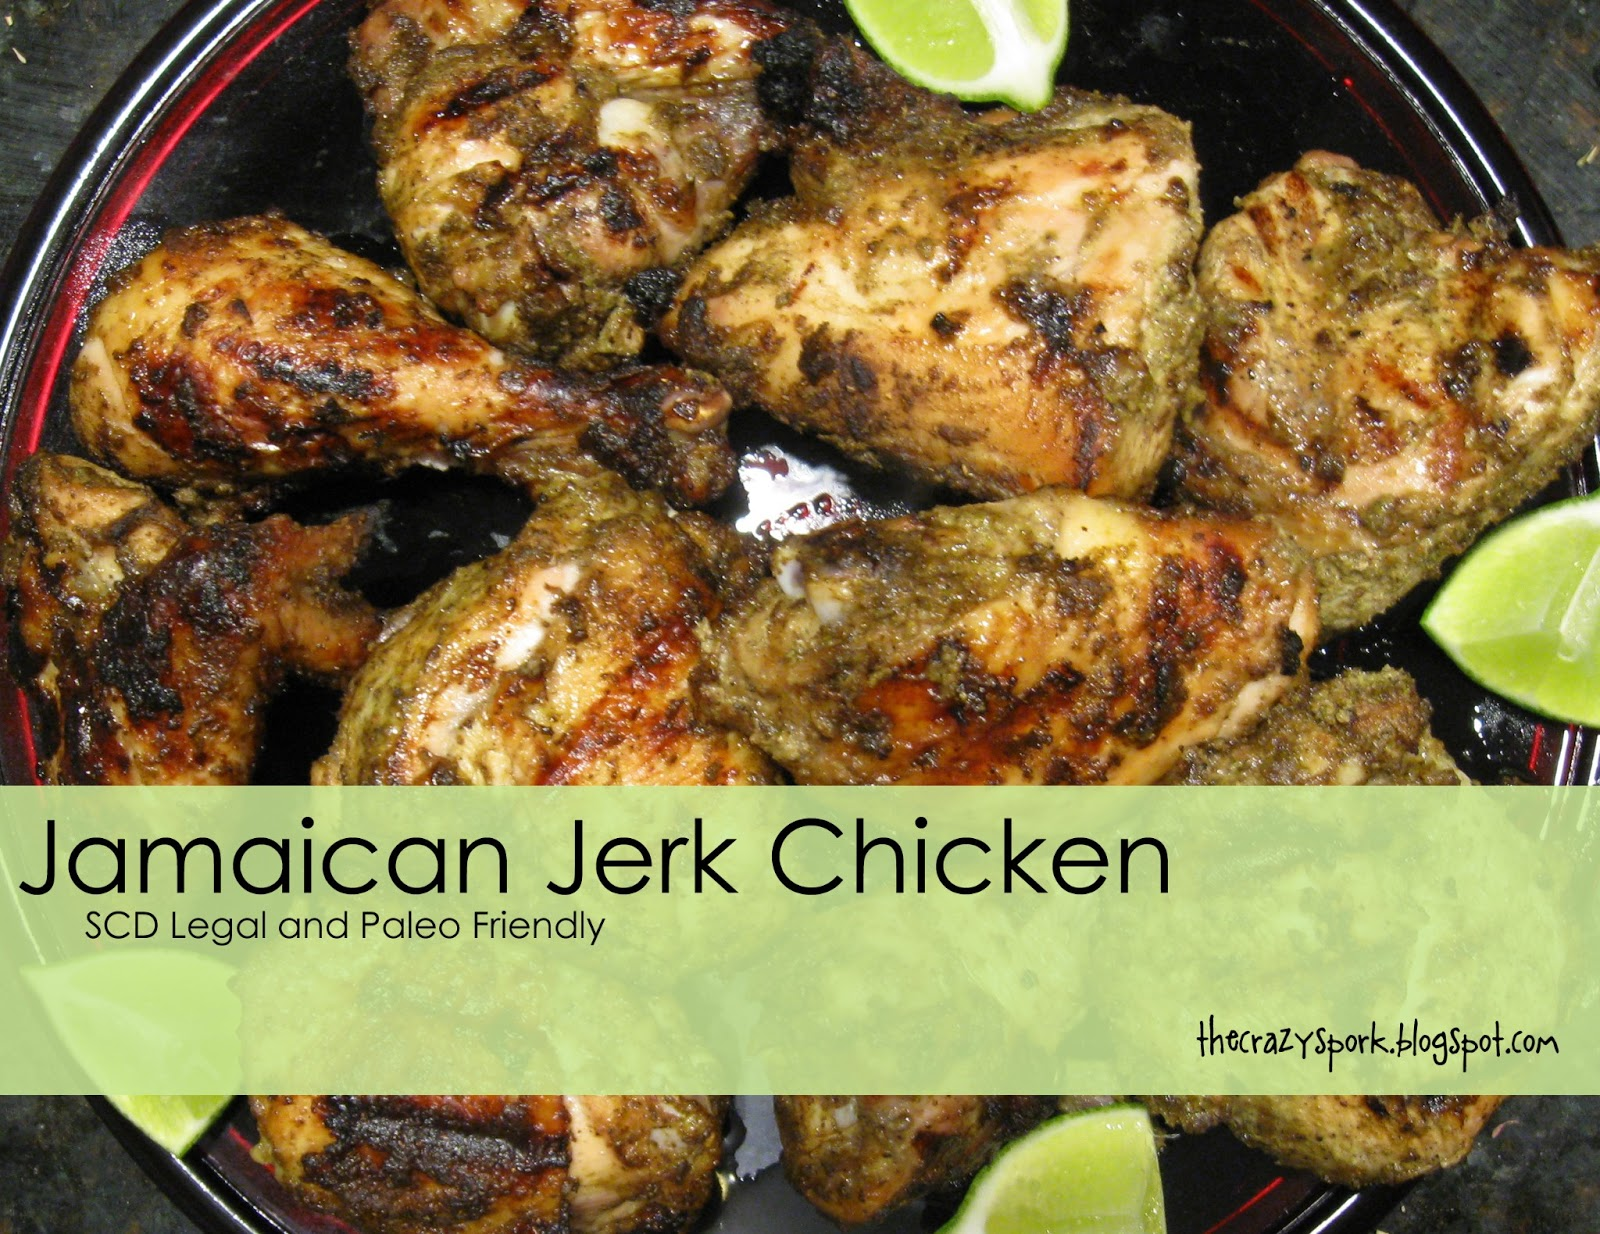 Jamaican Jerk Chicken For jamaican jerk chicken.